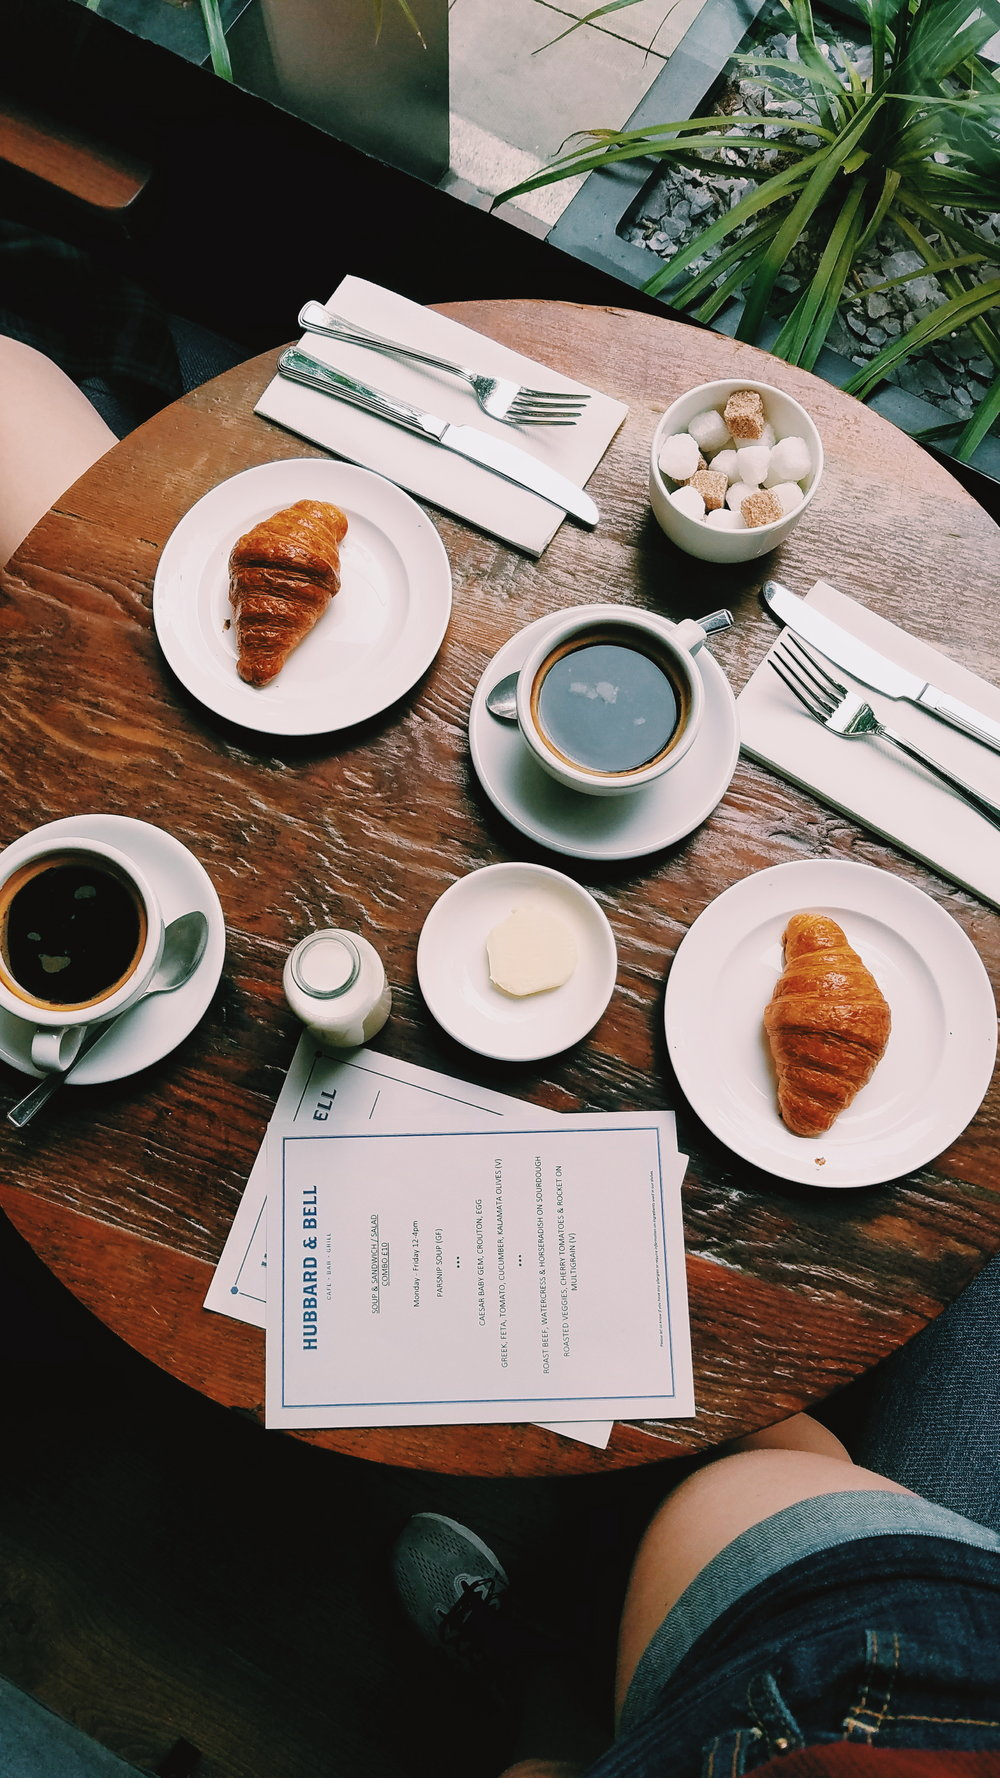 At the time of taking this photo, I was barely awake as we were waiting for a bus that was taking ages. Never would I have guessed the overpriced croissant and espresso breakfast pictured would still remain one of my favorite pictures from my trip